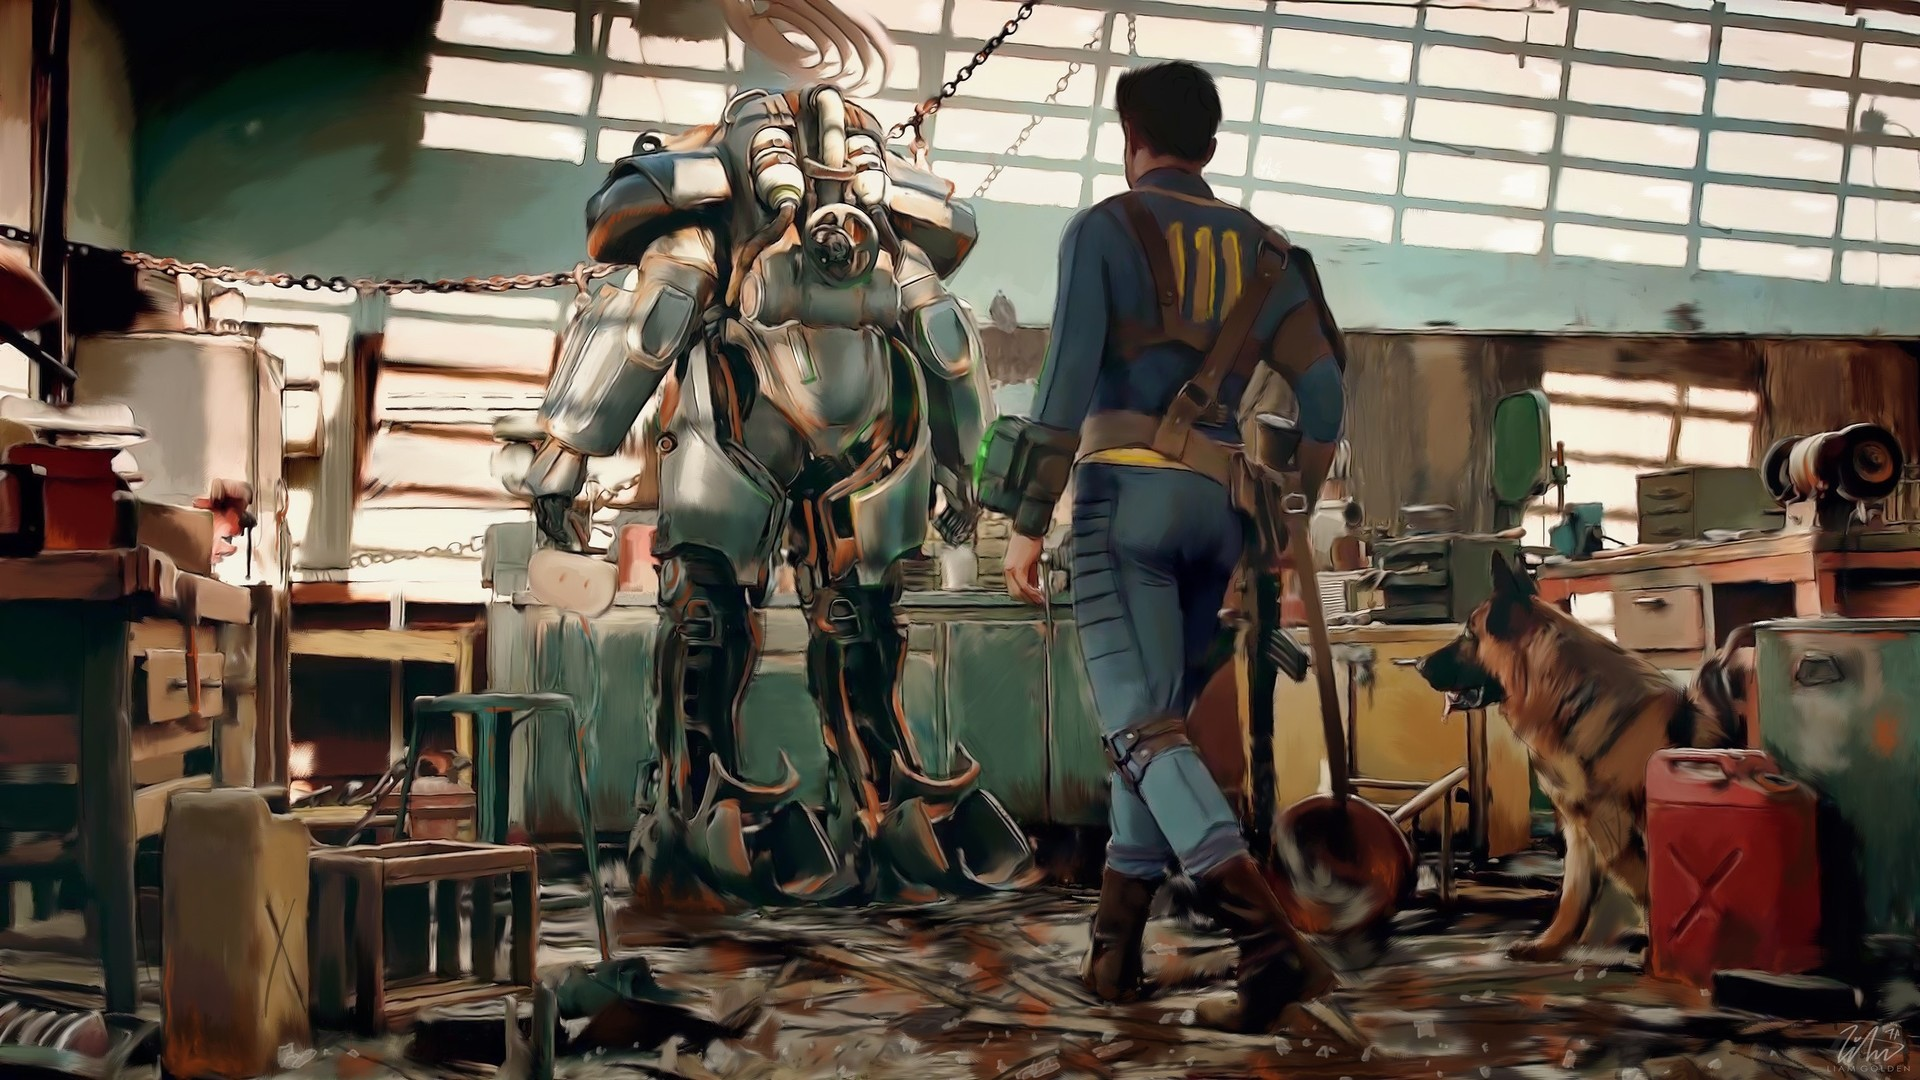 Liam golden fallout 4 discover 08 h1600